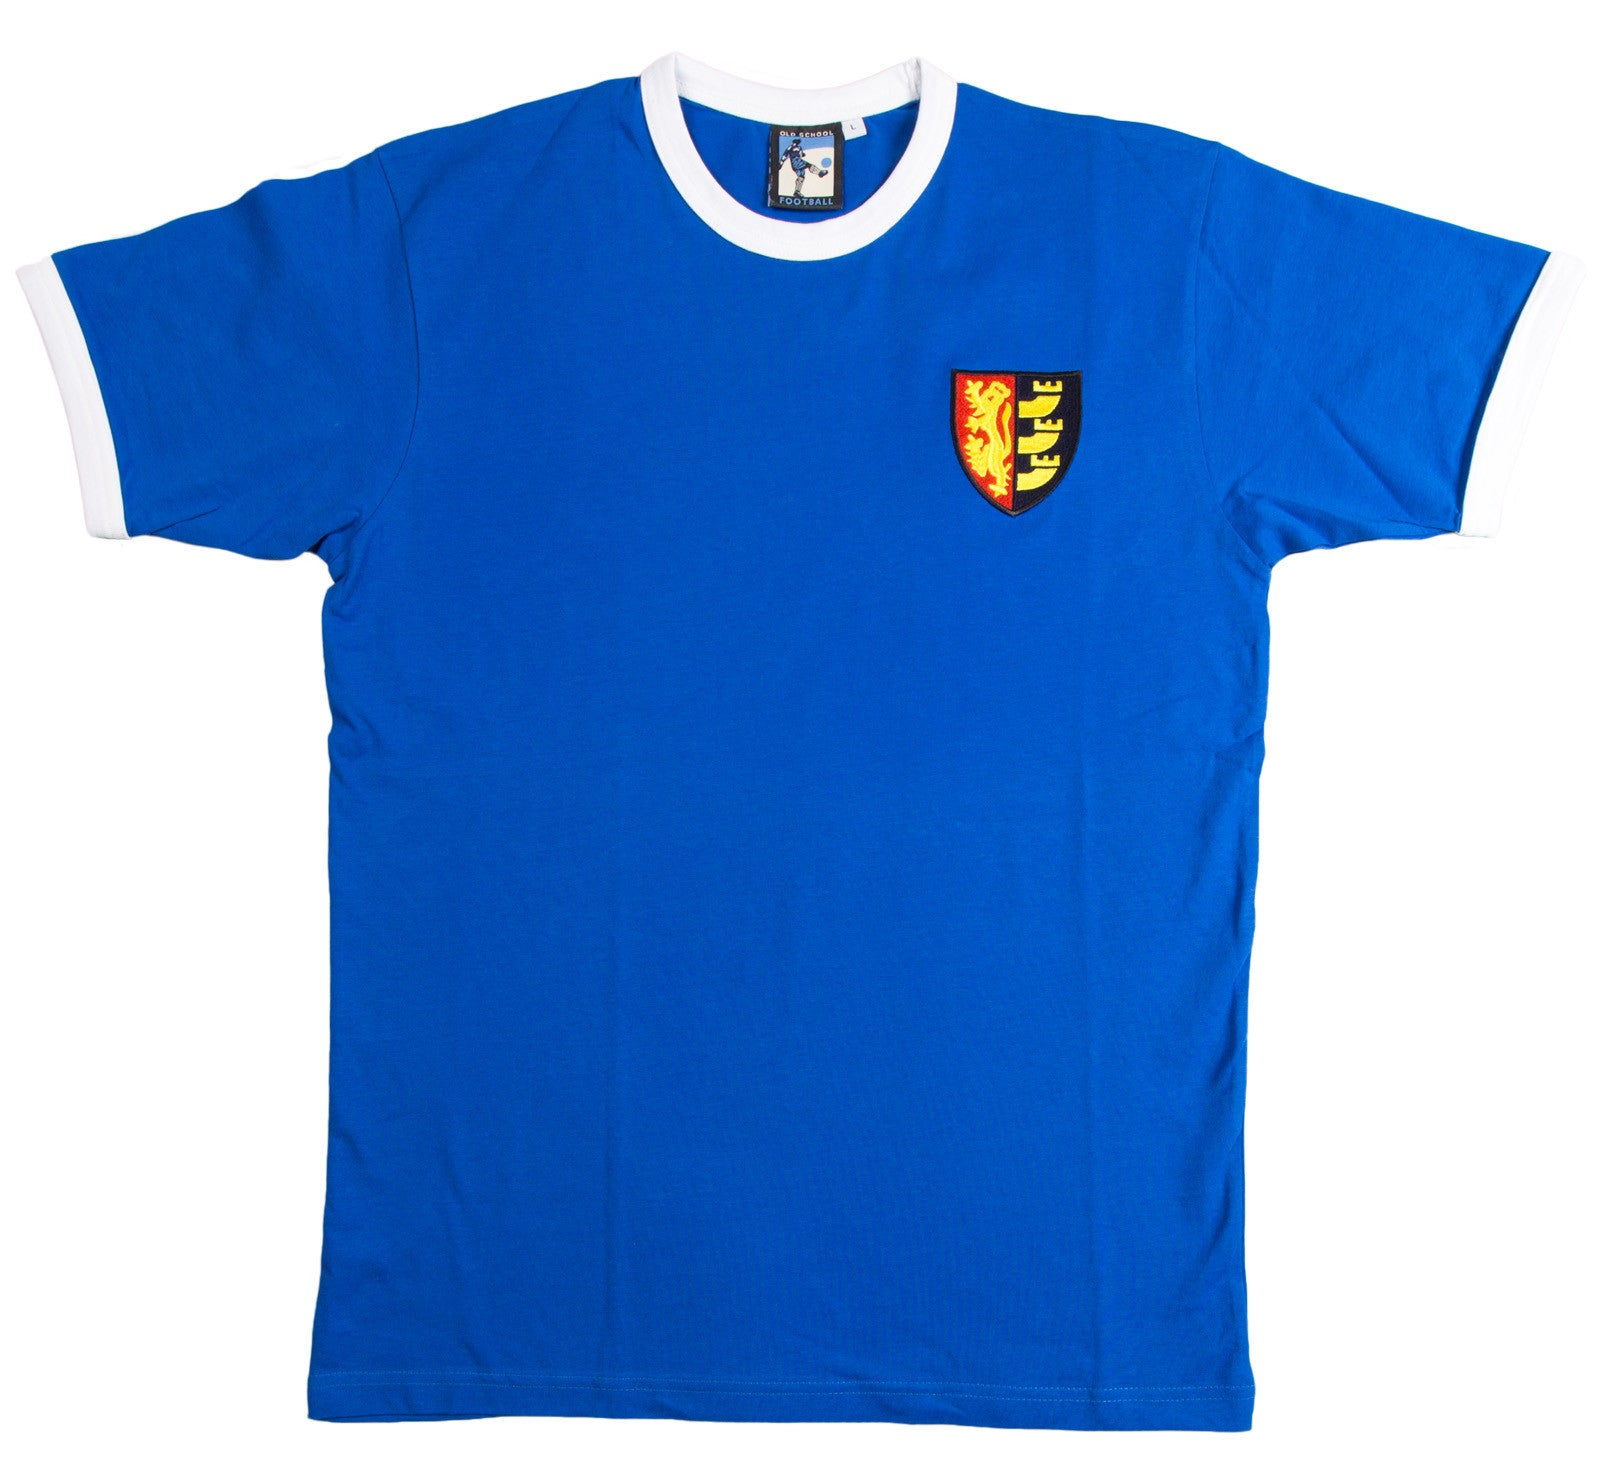 Ipswich Town Retro Football T Shirt 1966 - 1972 - T-shirt